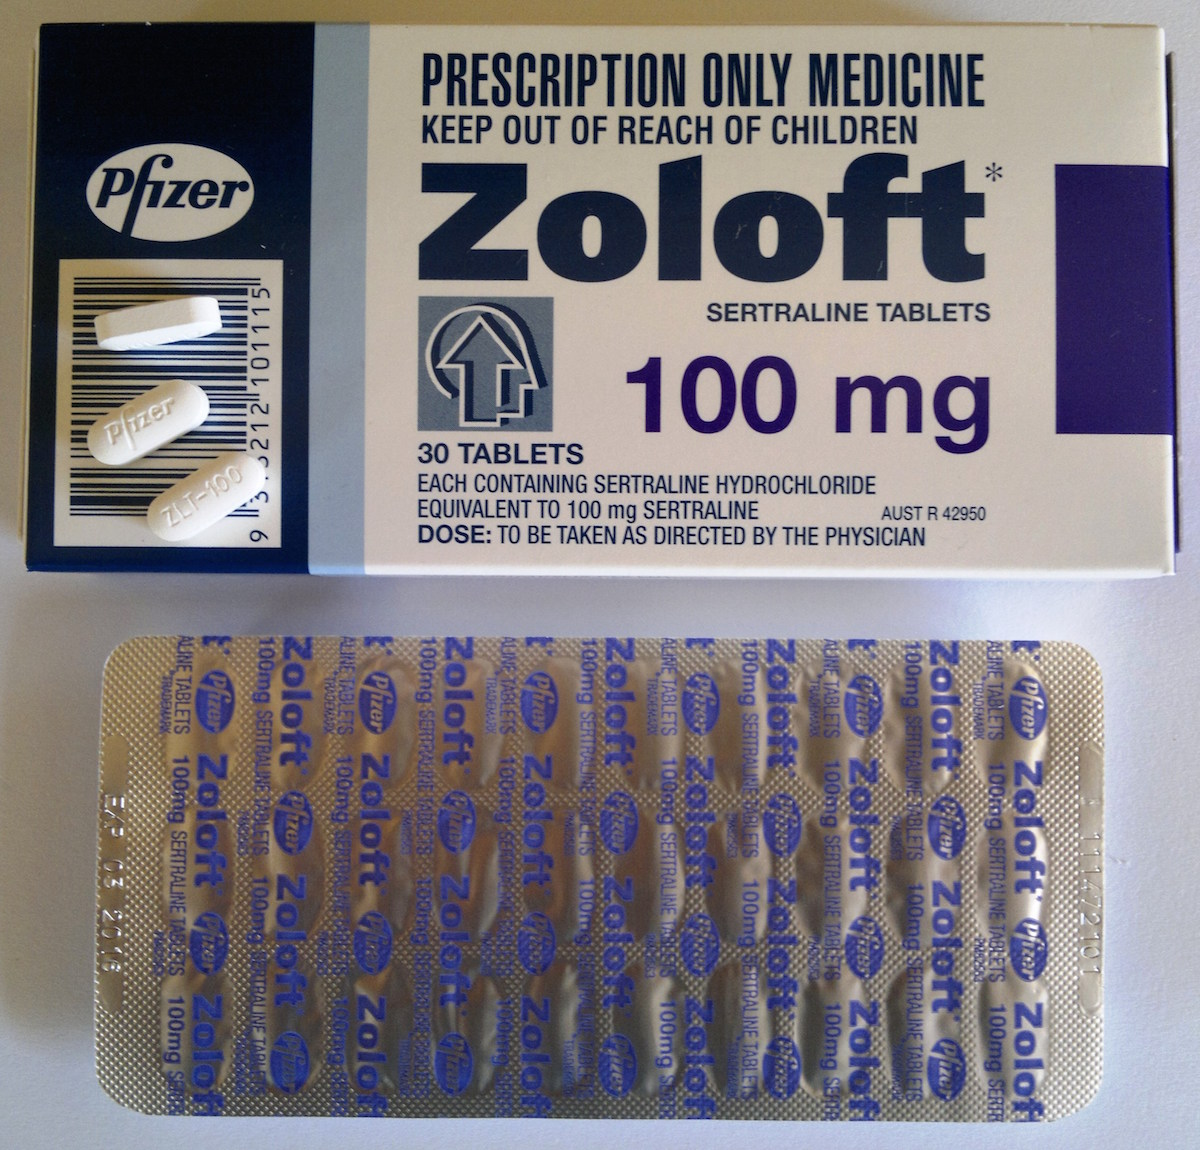 Zoloft, a trade name of the drug sertraline, is an SSRI-class antidepressant.   Editor182/Wikimedia Commons  (public domain)